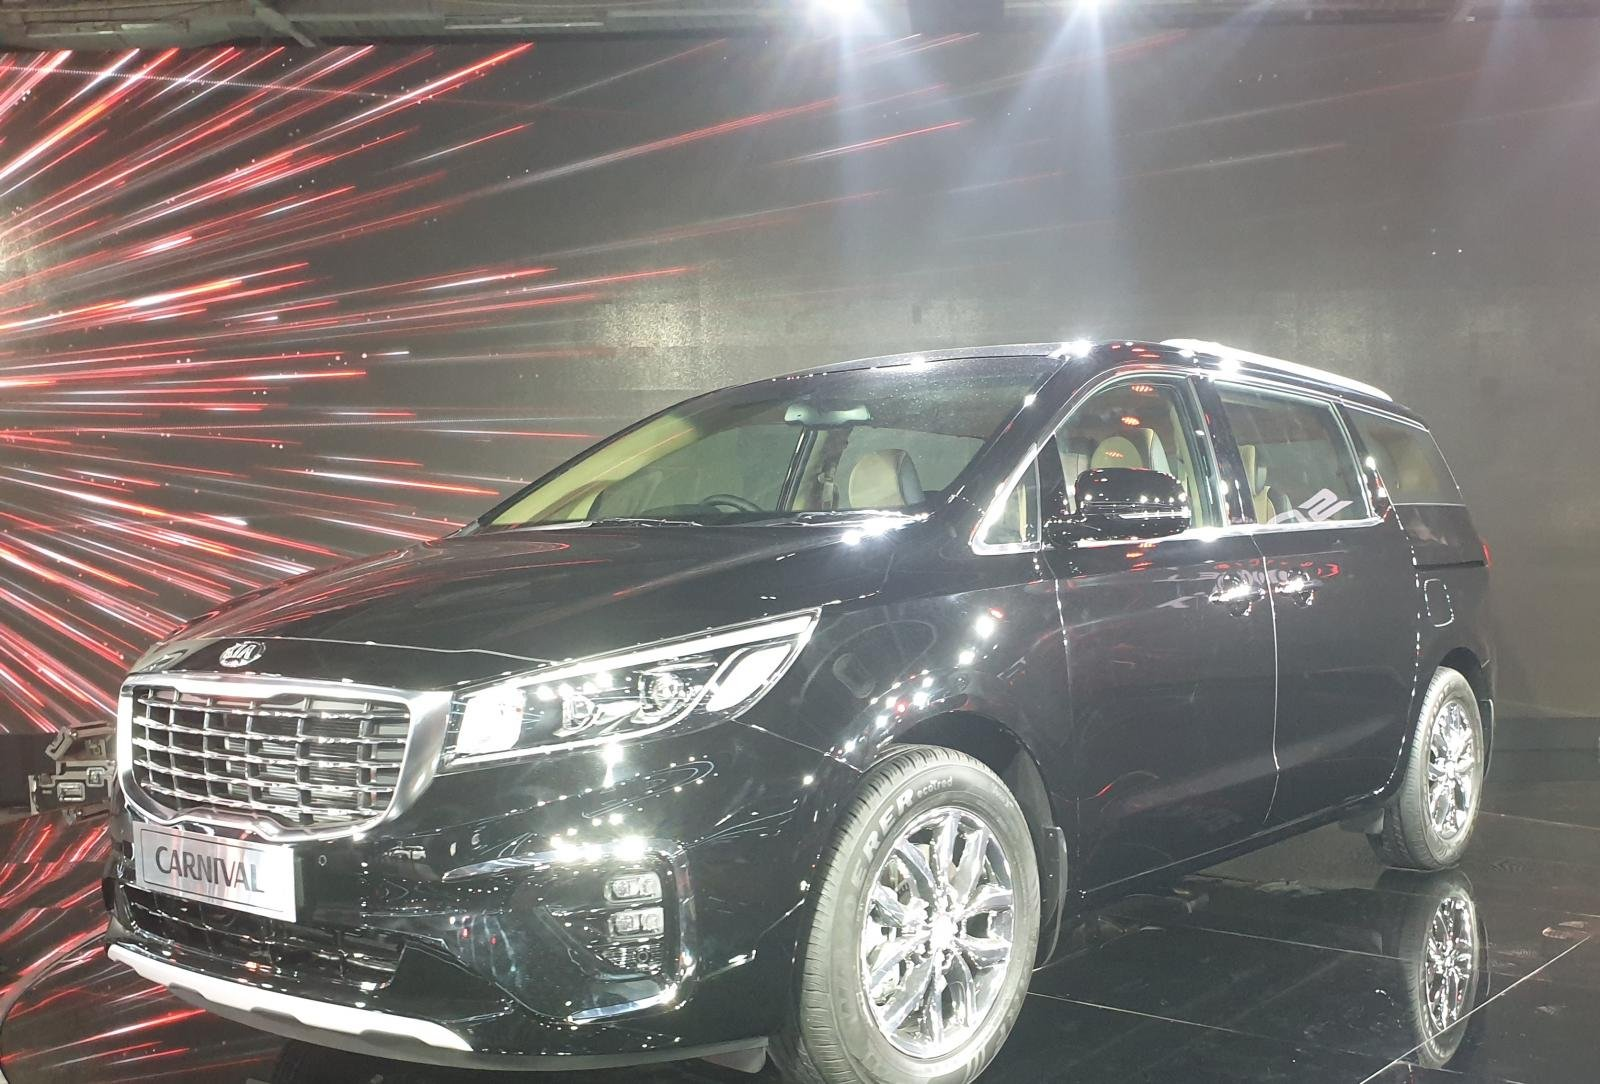 Kia Carnival Launched At 2020 Auto Expo With A Starting Price of Rs. 24.95 Lakhs